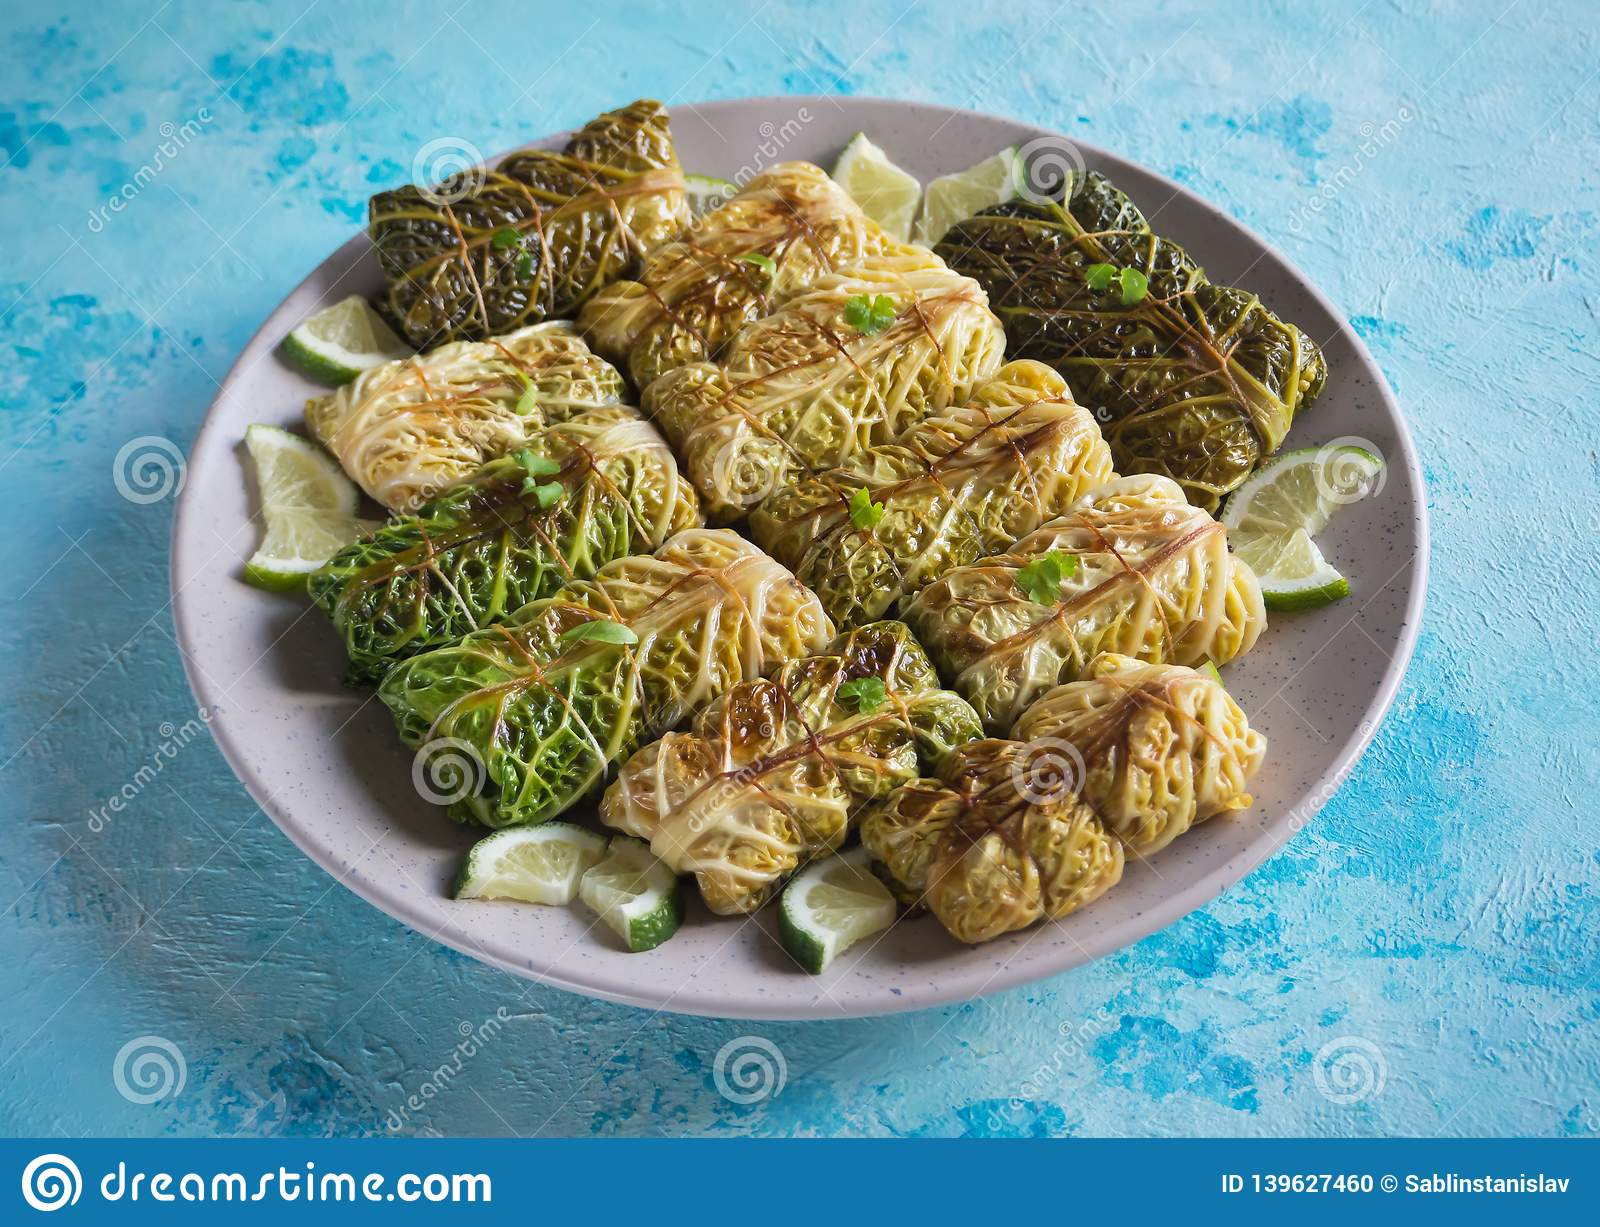 Juicy stuffed cabbage in a plate on a blue table.